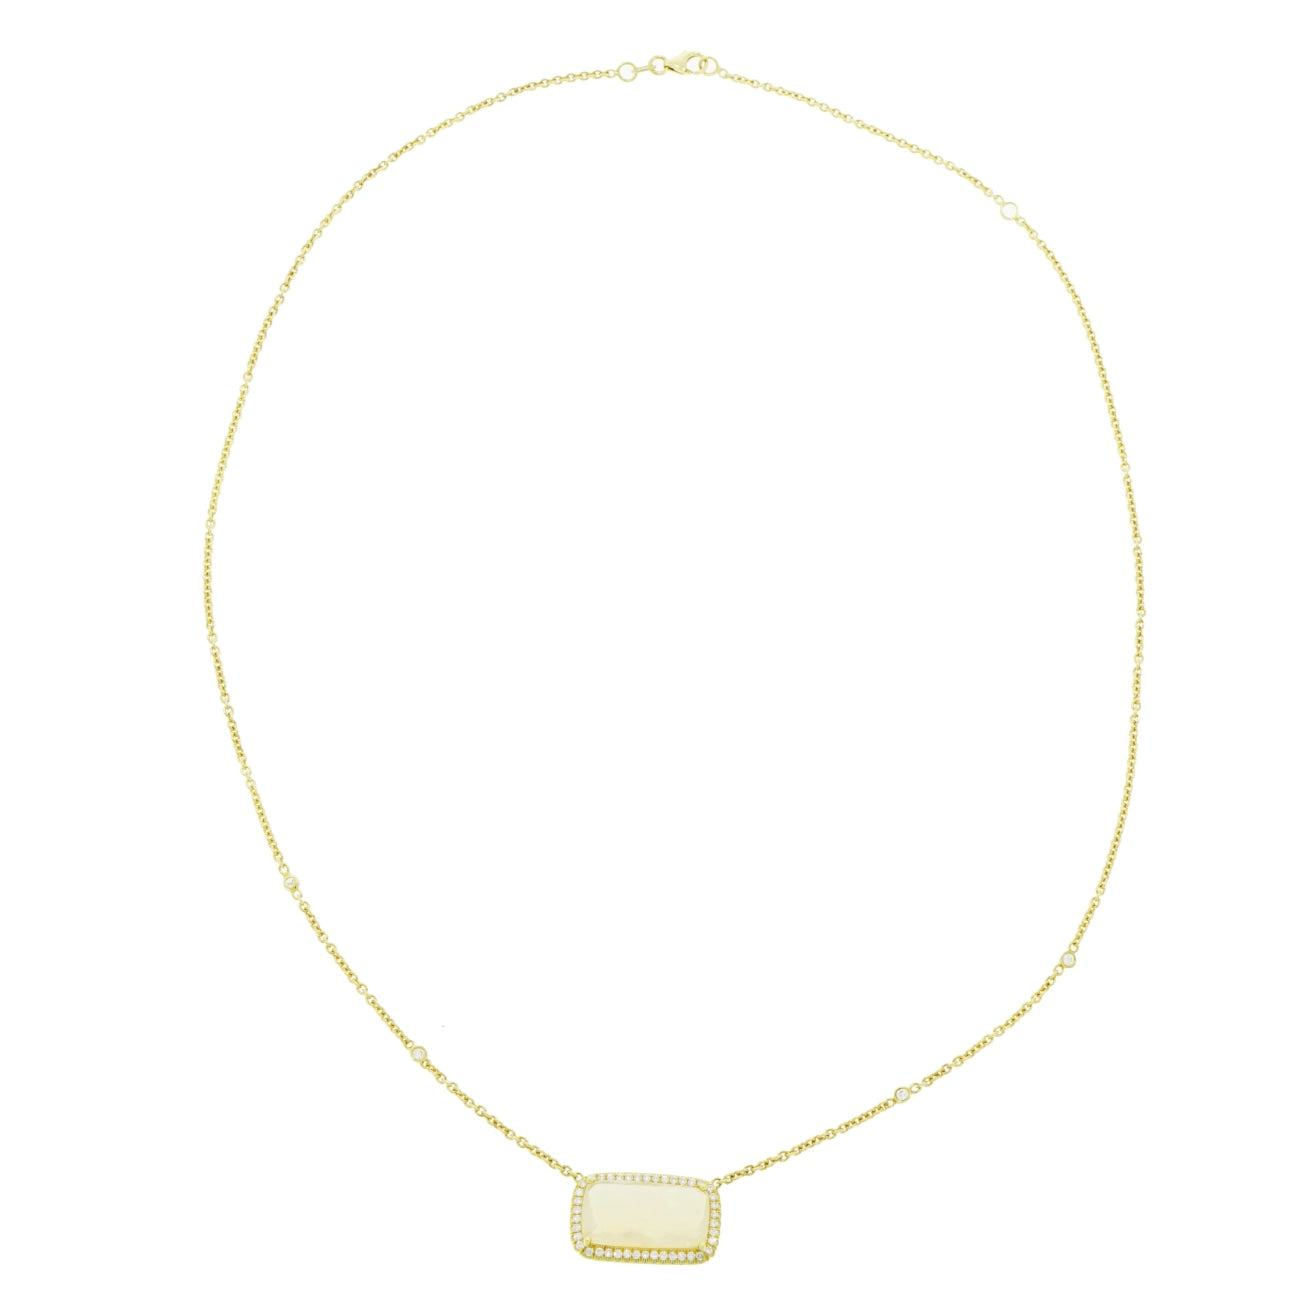 Lauren K Jewelry - Rectangular Opal & Diamond Yellow Gold Pendant | Manfredi Jewels